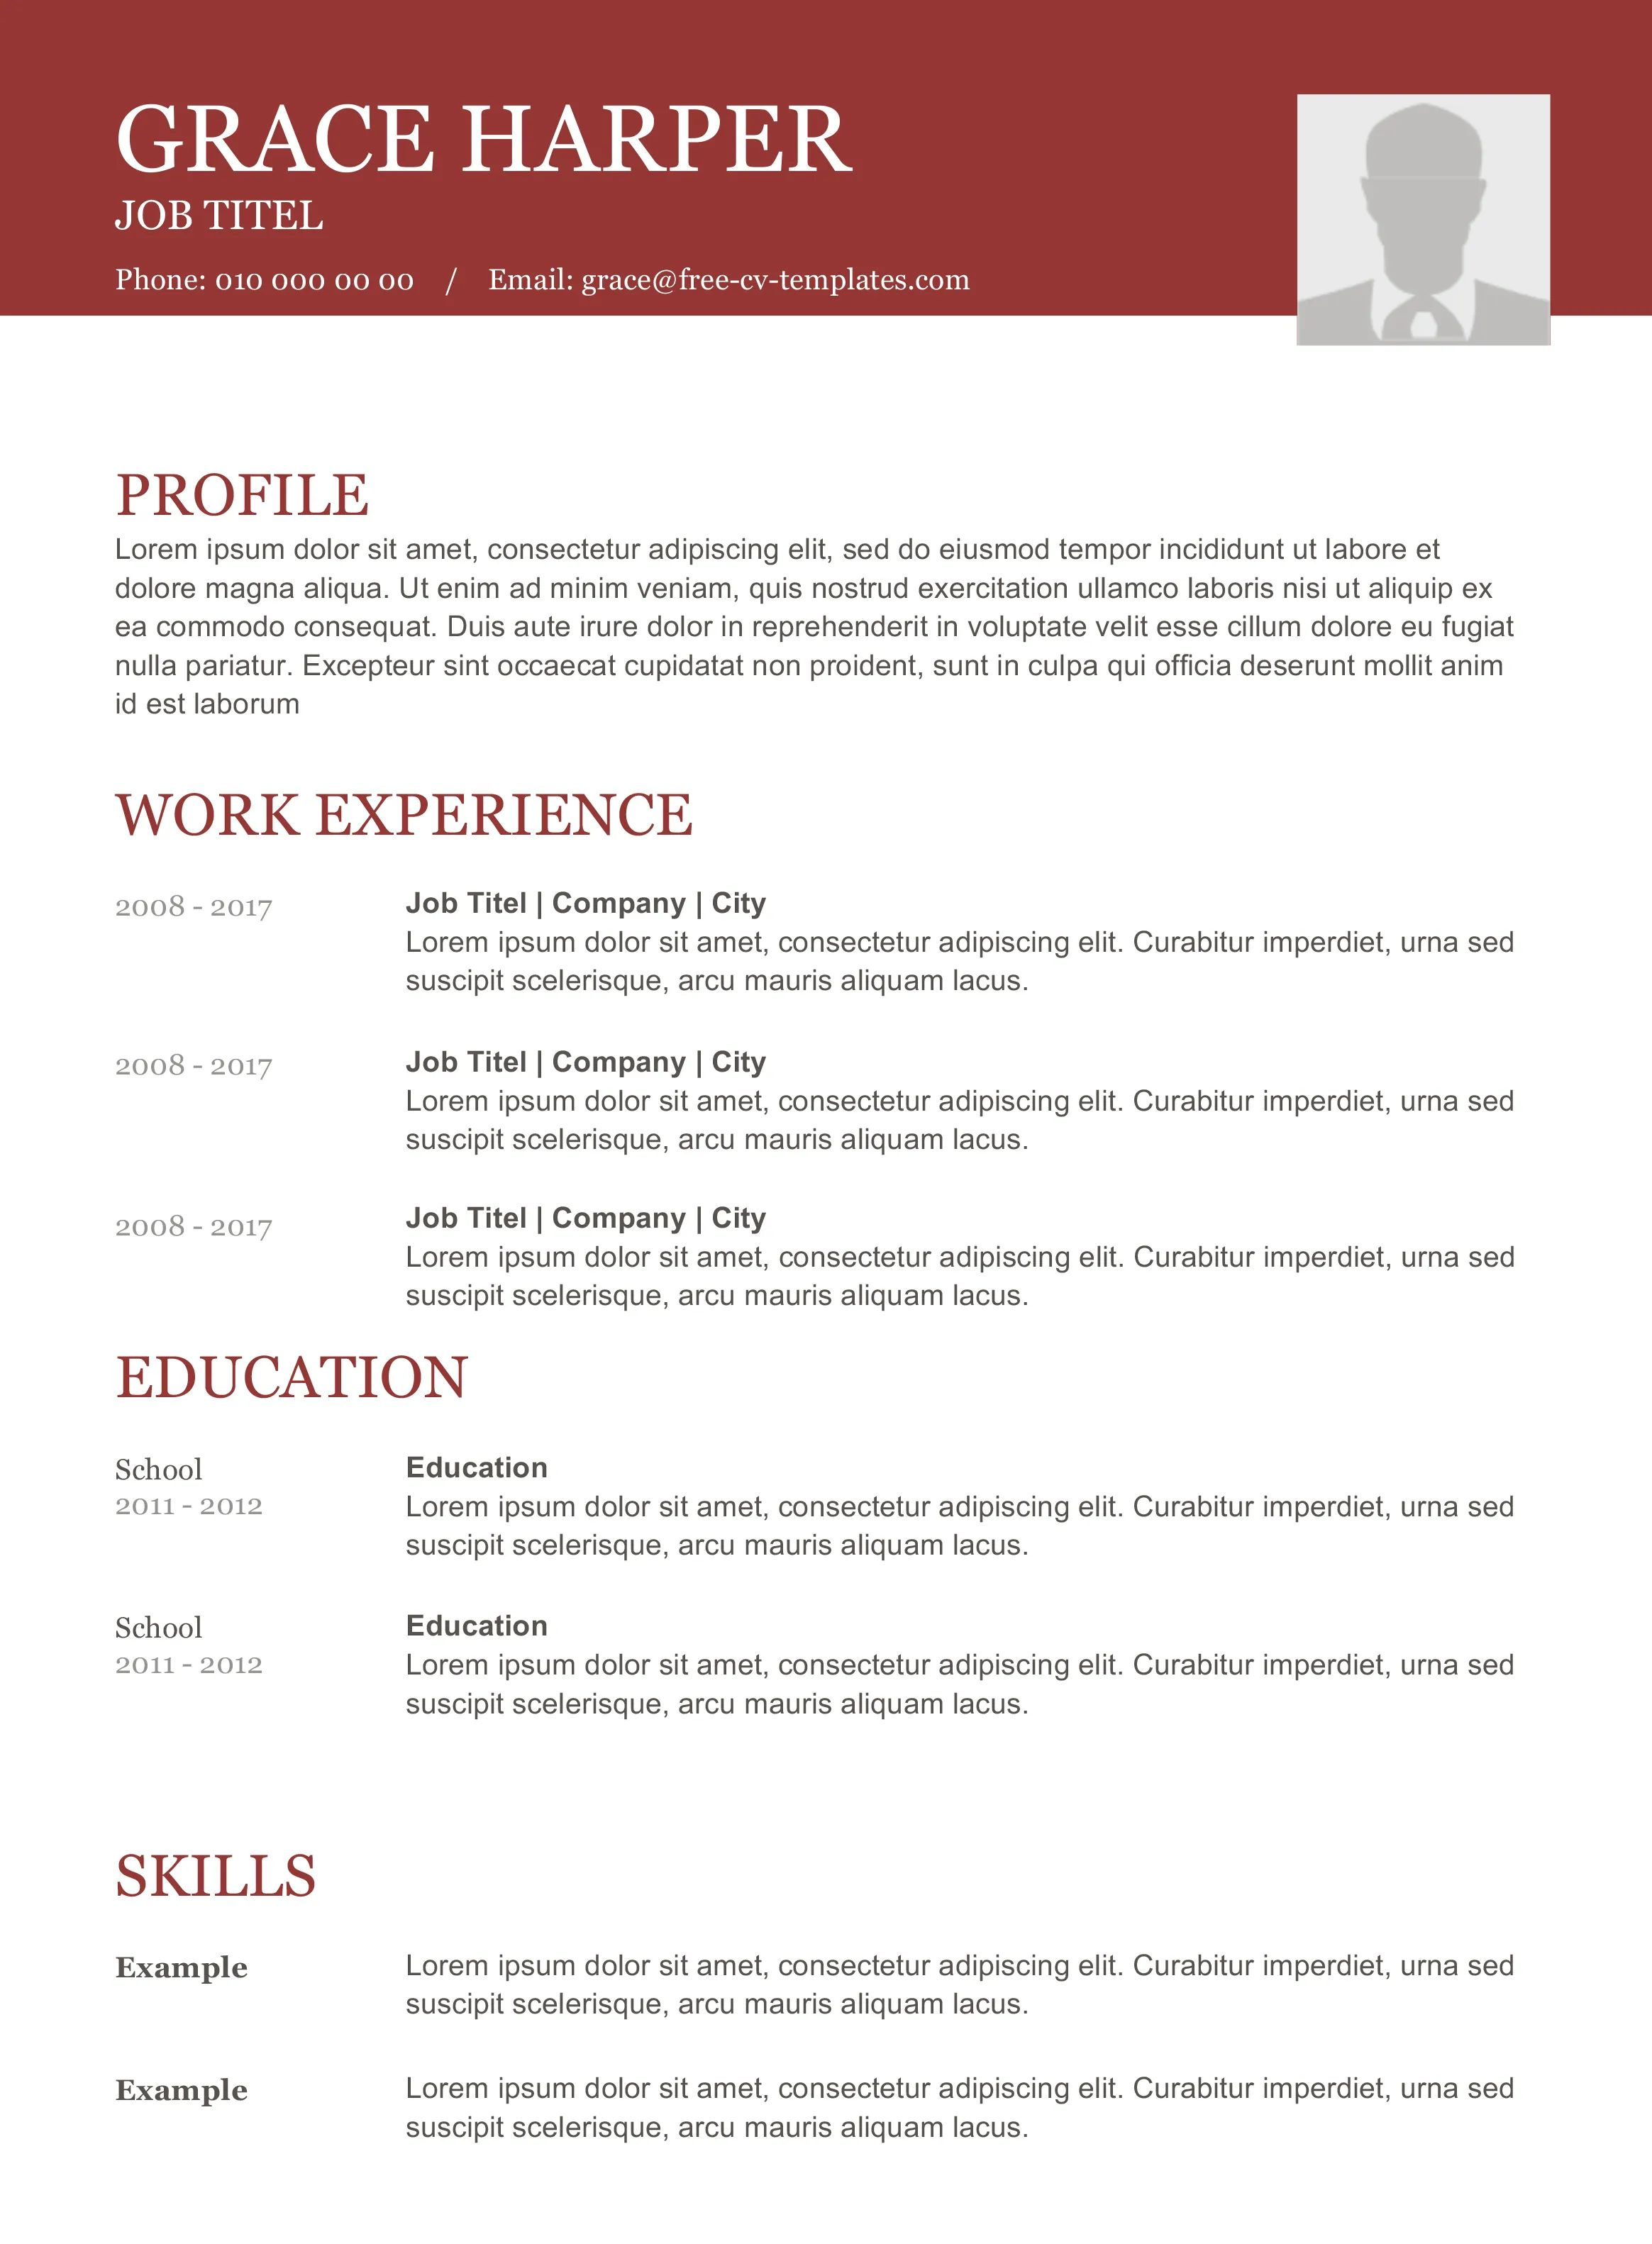 download modern cv